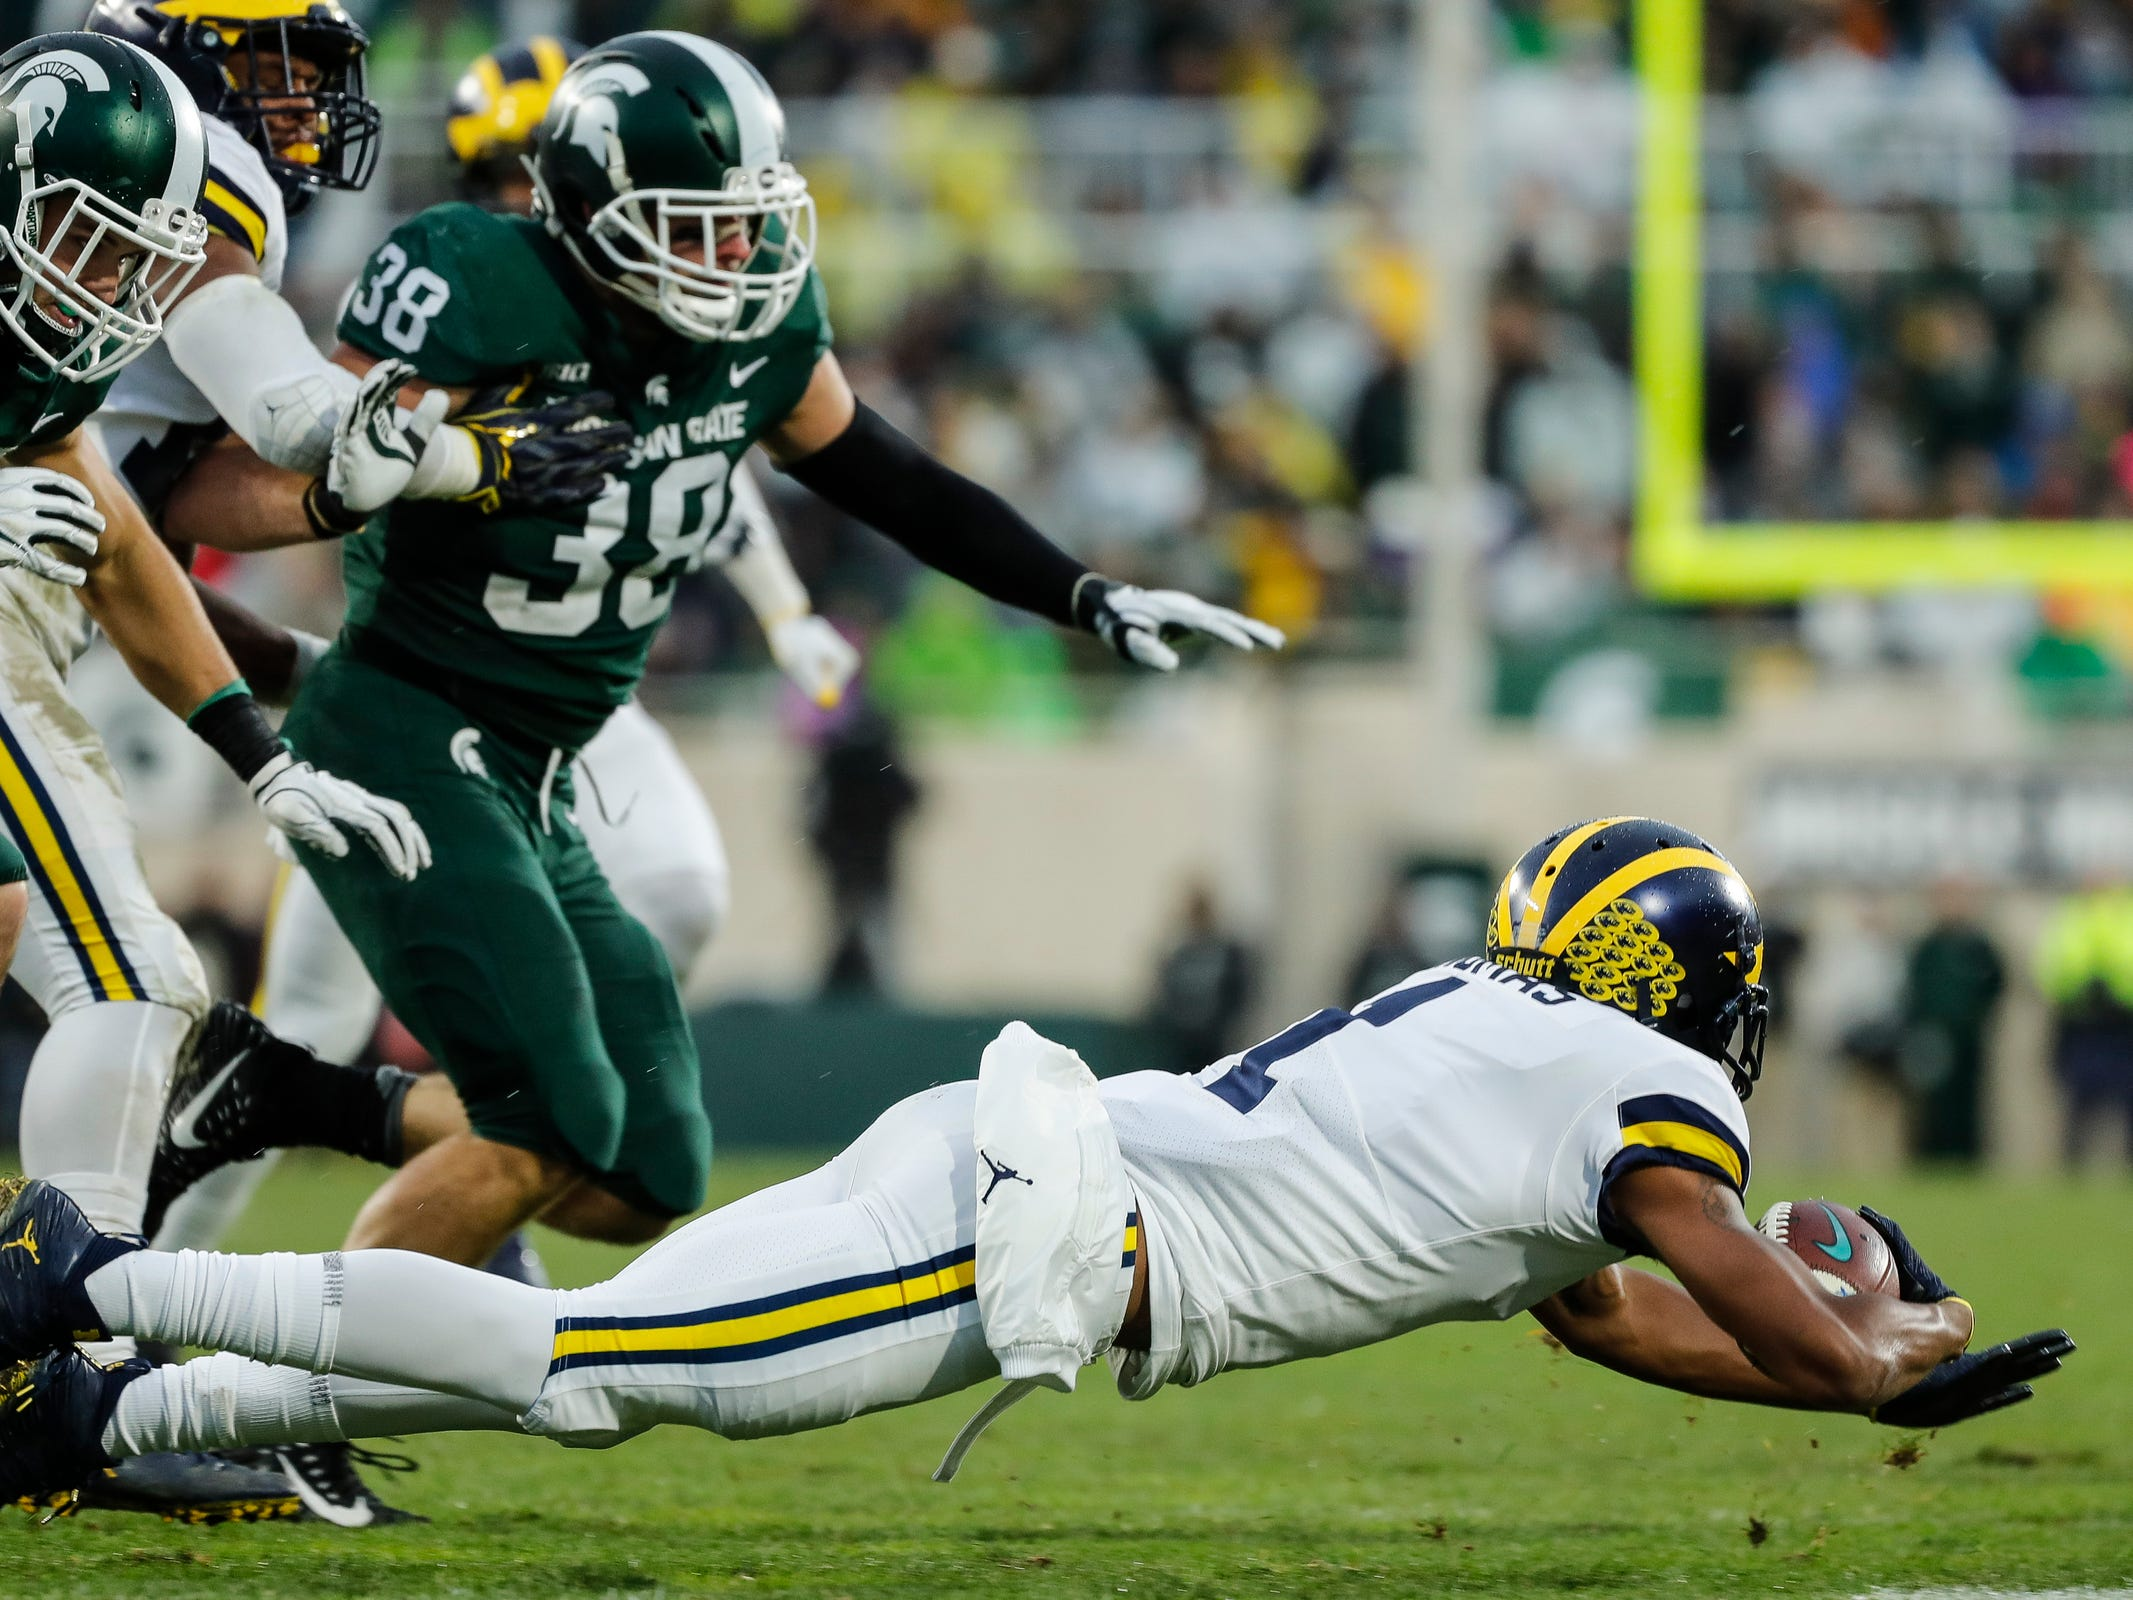 Michigan kick returner Ambry Thomas dives on a return against Michigan State during the second half at Spartan Stadium in East Lansing, Saturday, Oct. 20, 2018.